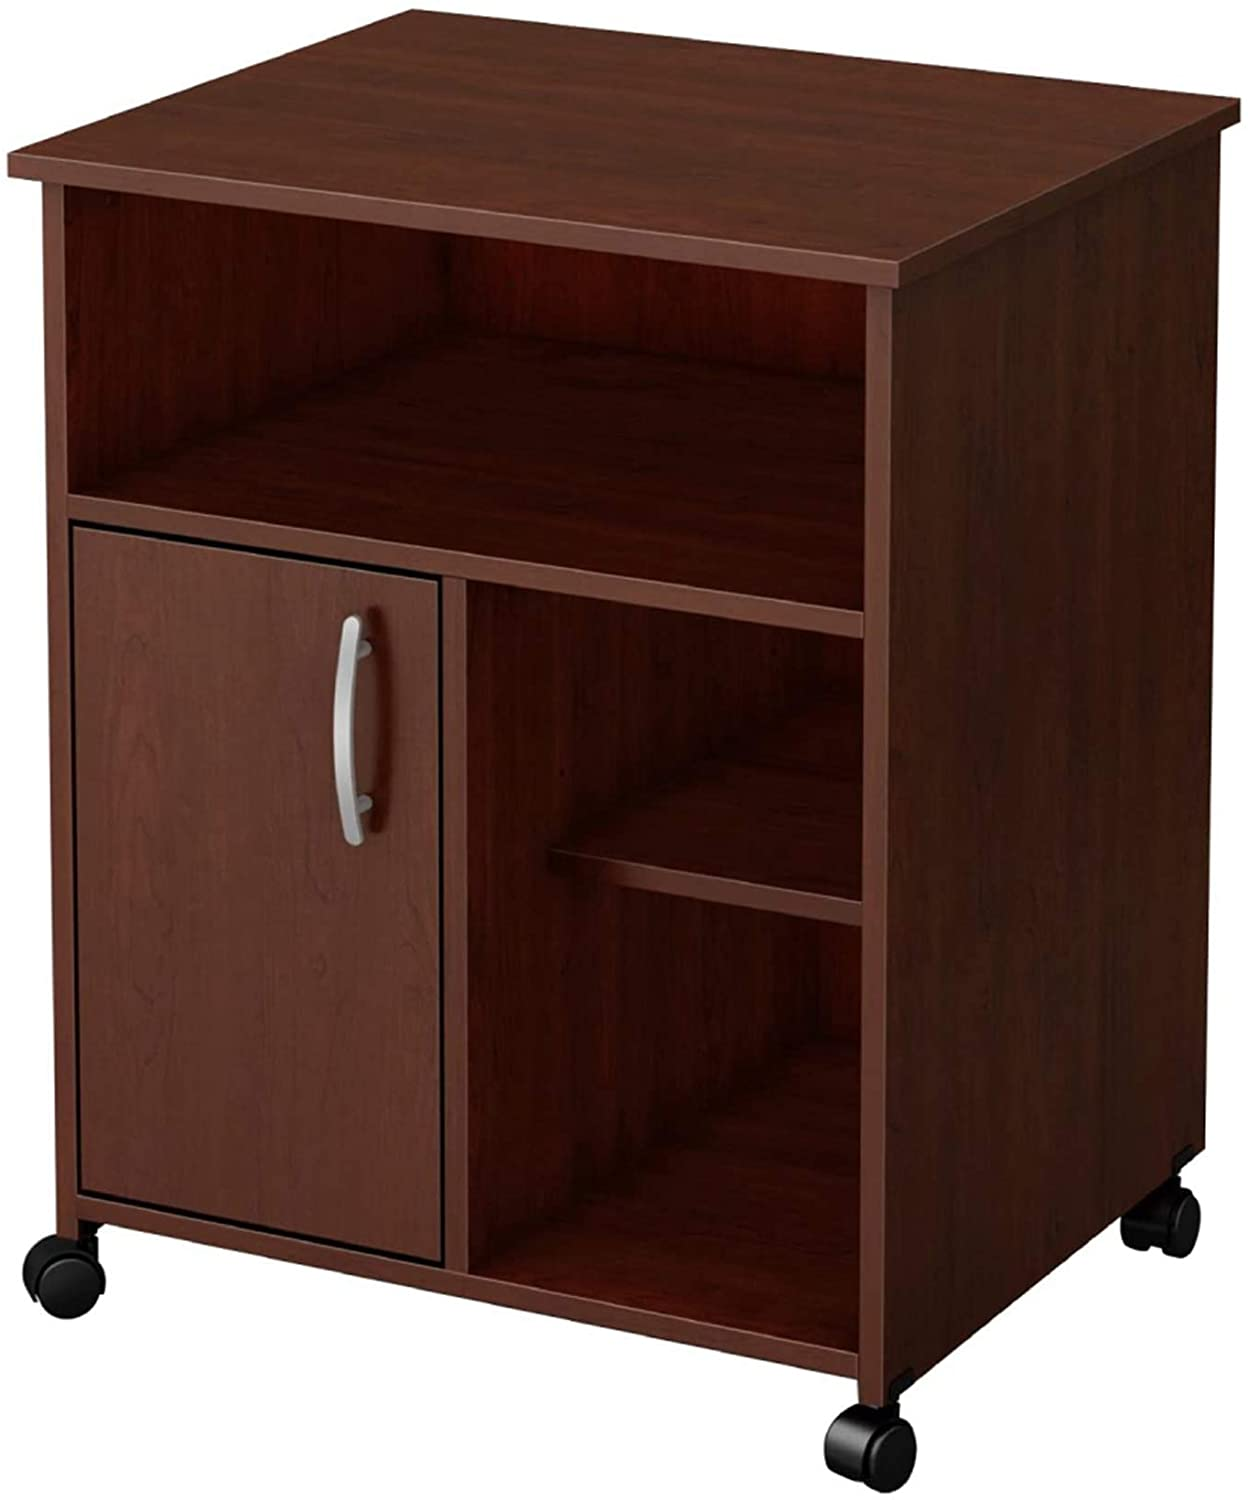 Printer Stand with Door Storage Office Cabinet, Wooden Under Desk Printer Cart Cabinet with Wheels Brown Color Durable File Cabinet, Books, Photos, Files Storage Organizer, Ideal for Office